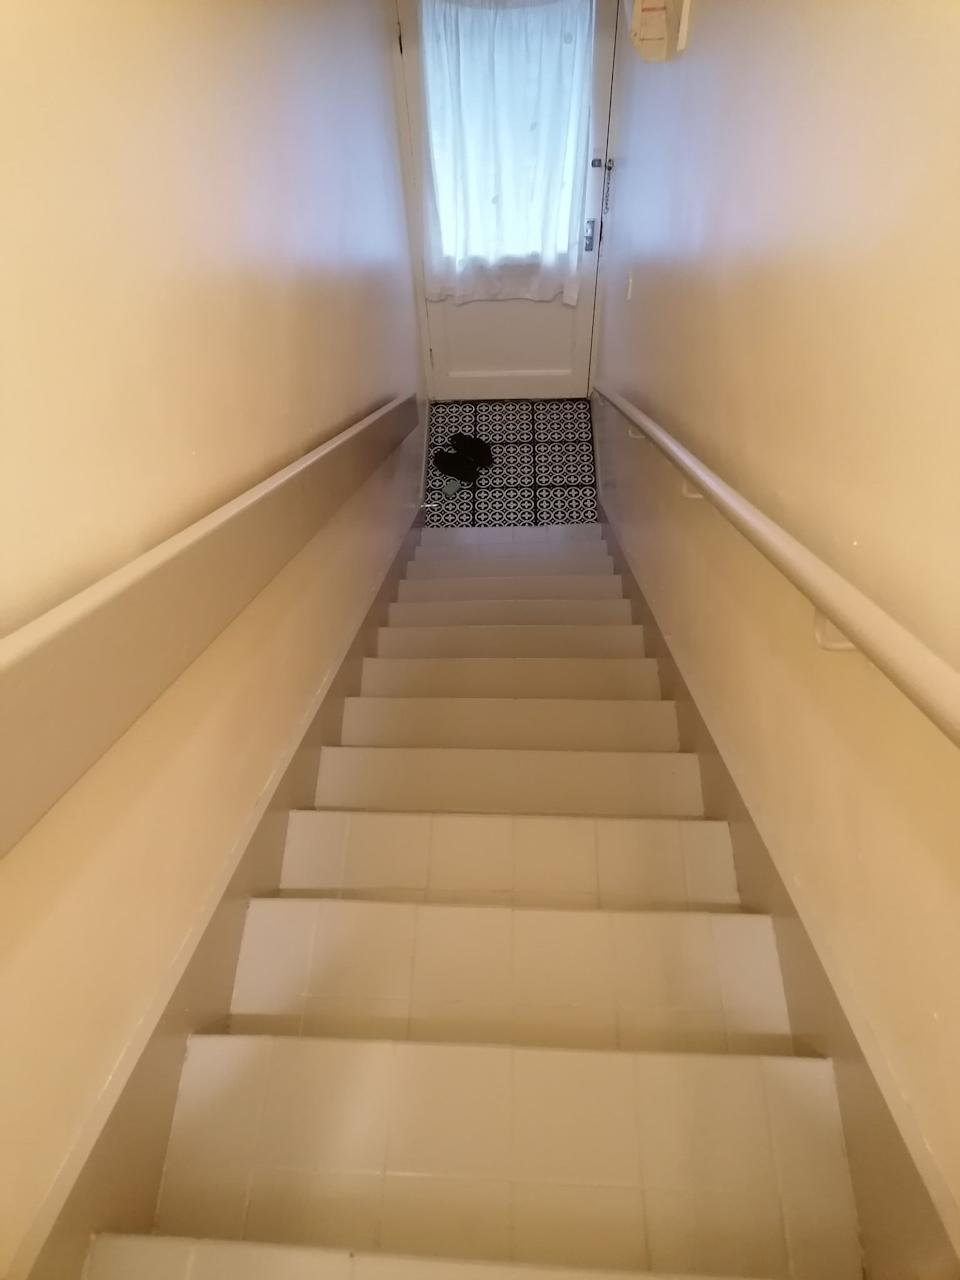 The view from the top of the stairs after the makeover. (Supplied latestdeals.co.uk)